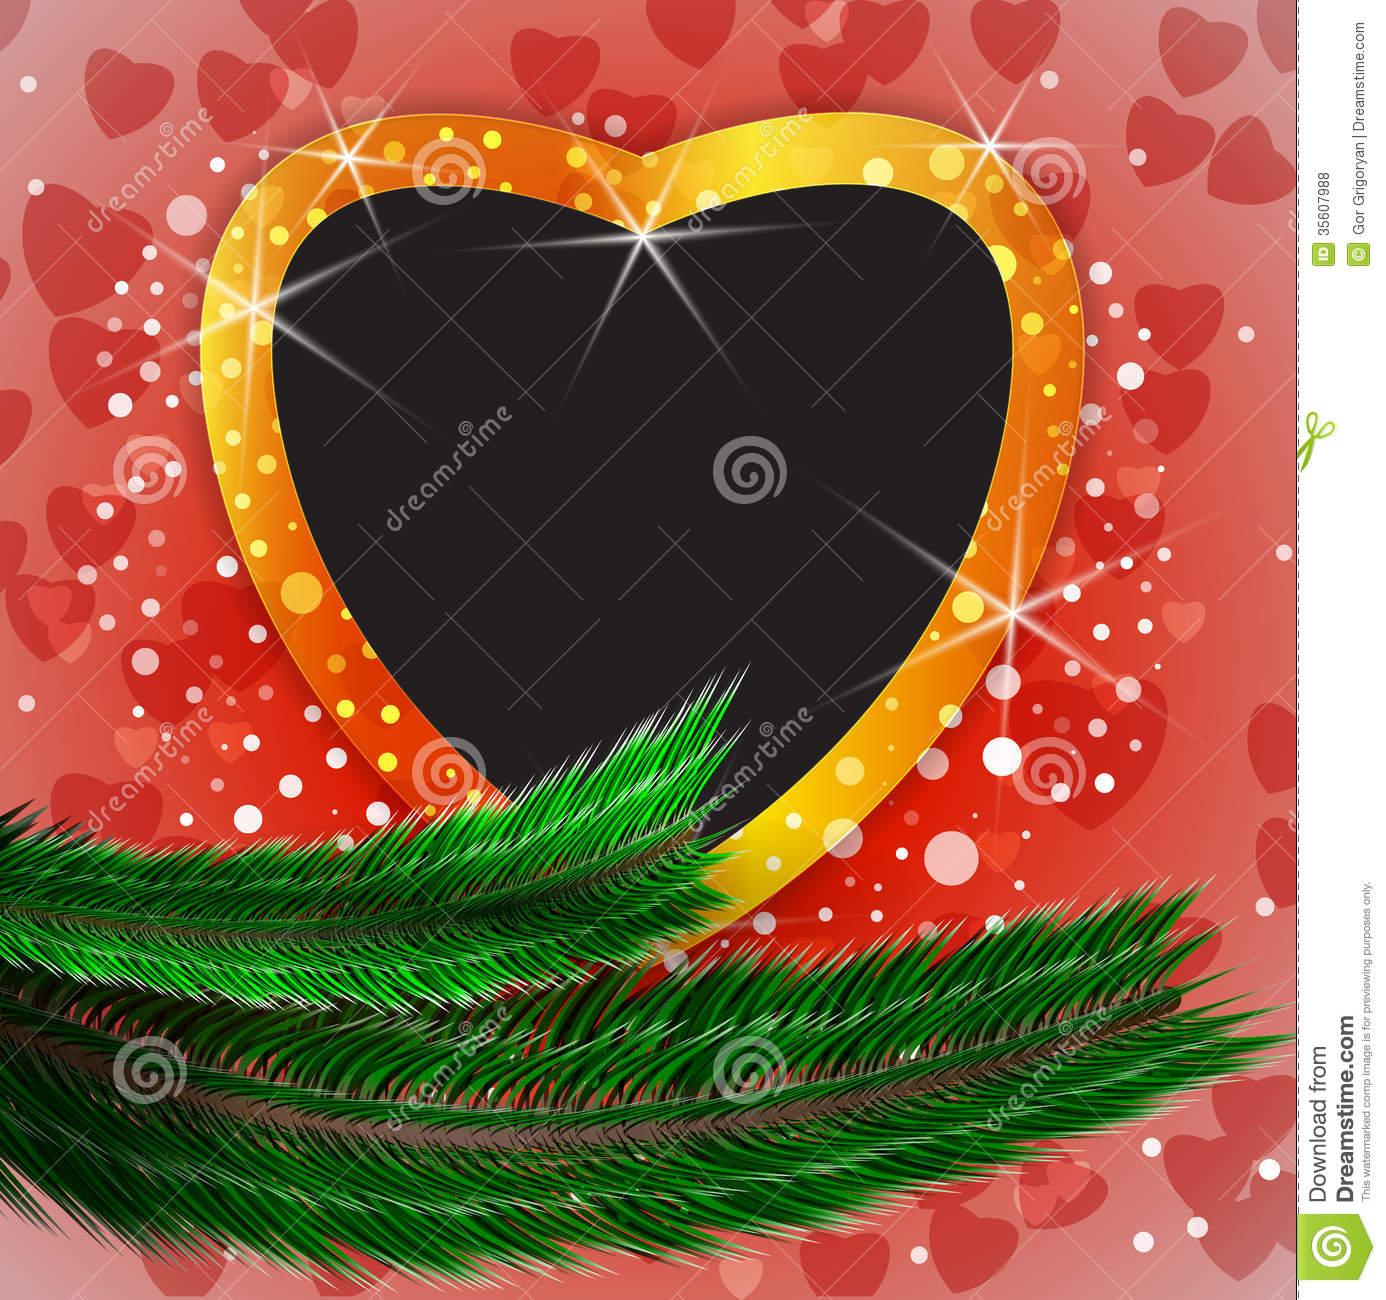 Cute christmas background with heart shaped blank photo